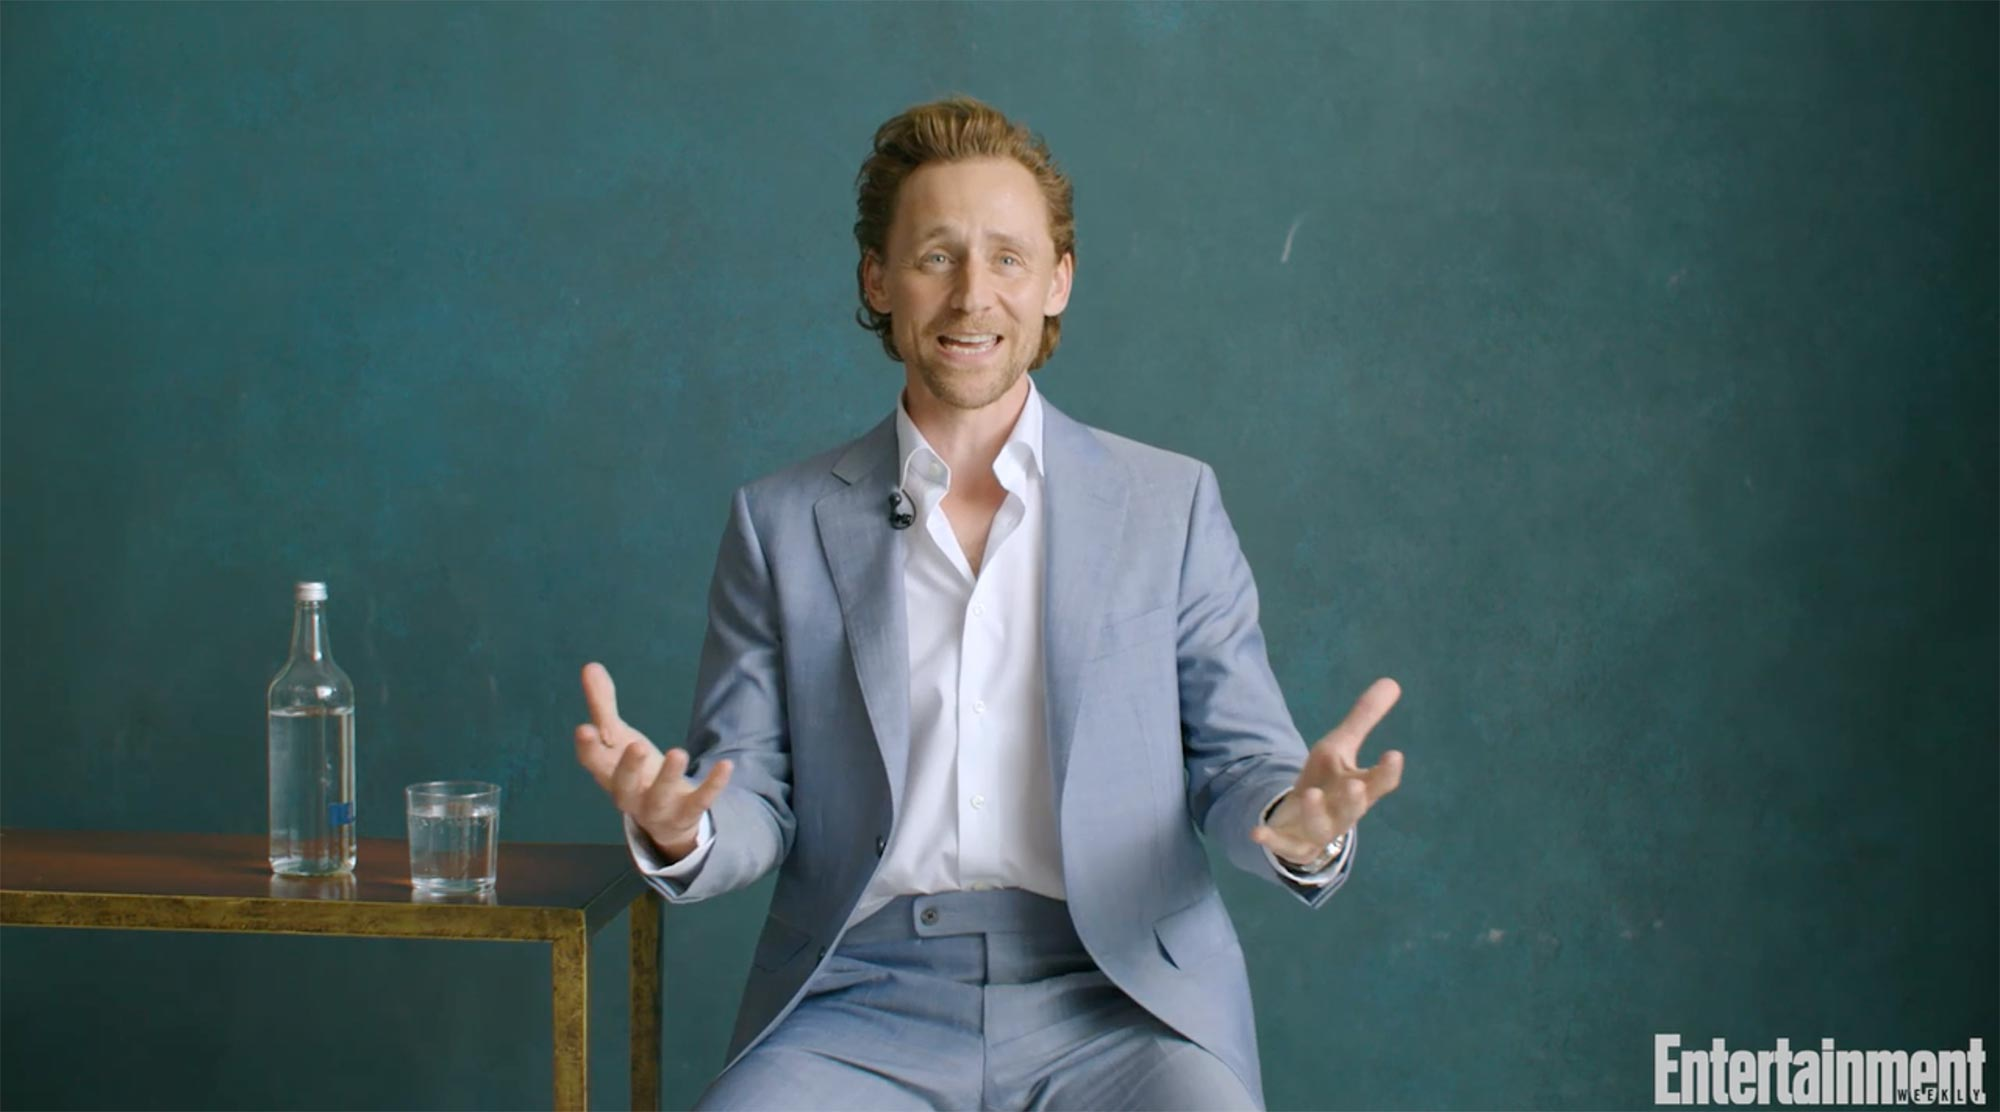 Tom Hiddleston talks about playing Loki for 10 years